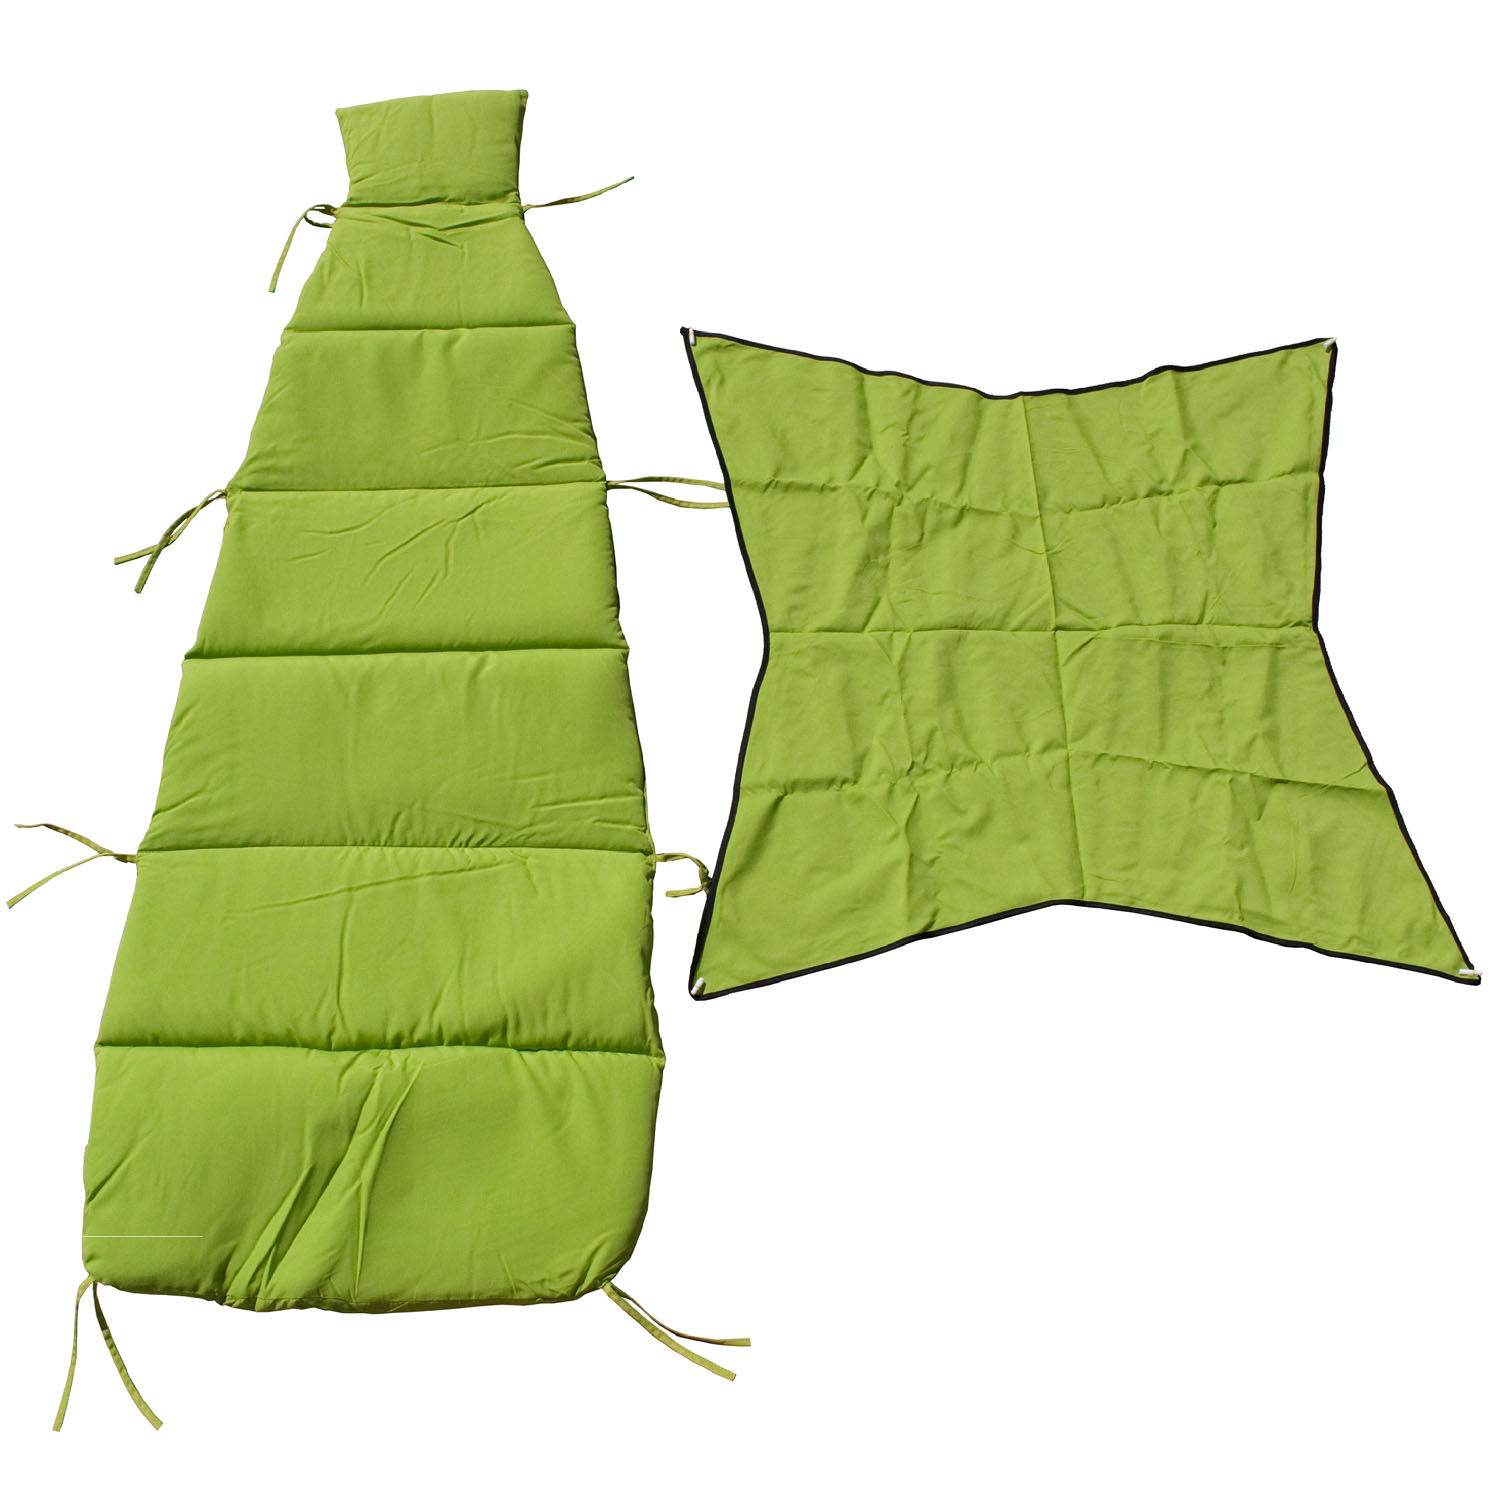 Cloud-9 Apple Green Pad/Pillow/Canopy Set